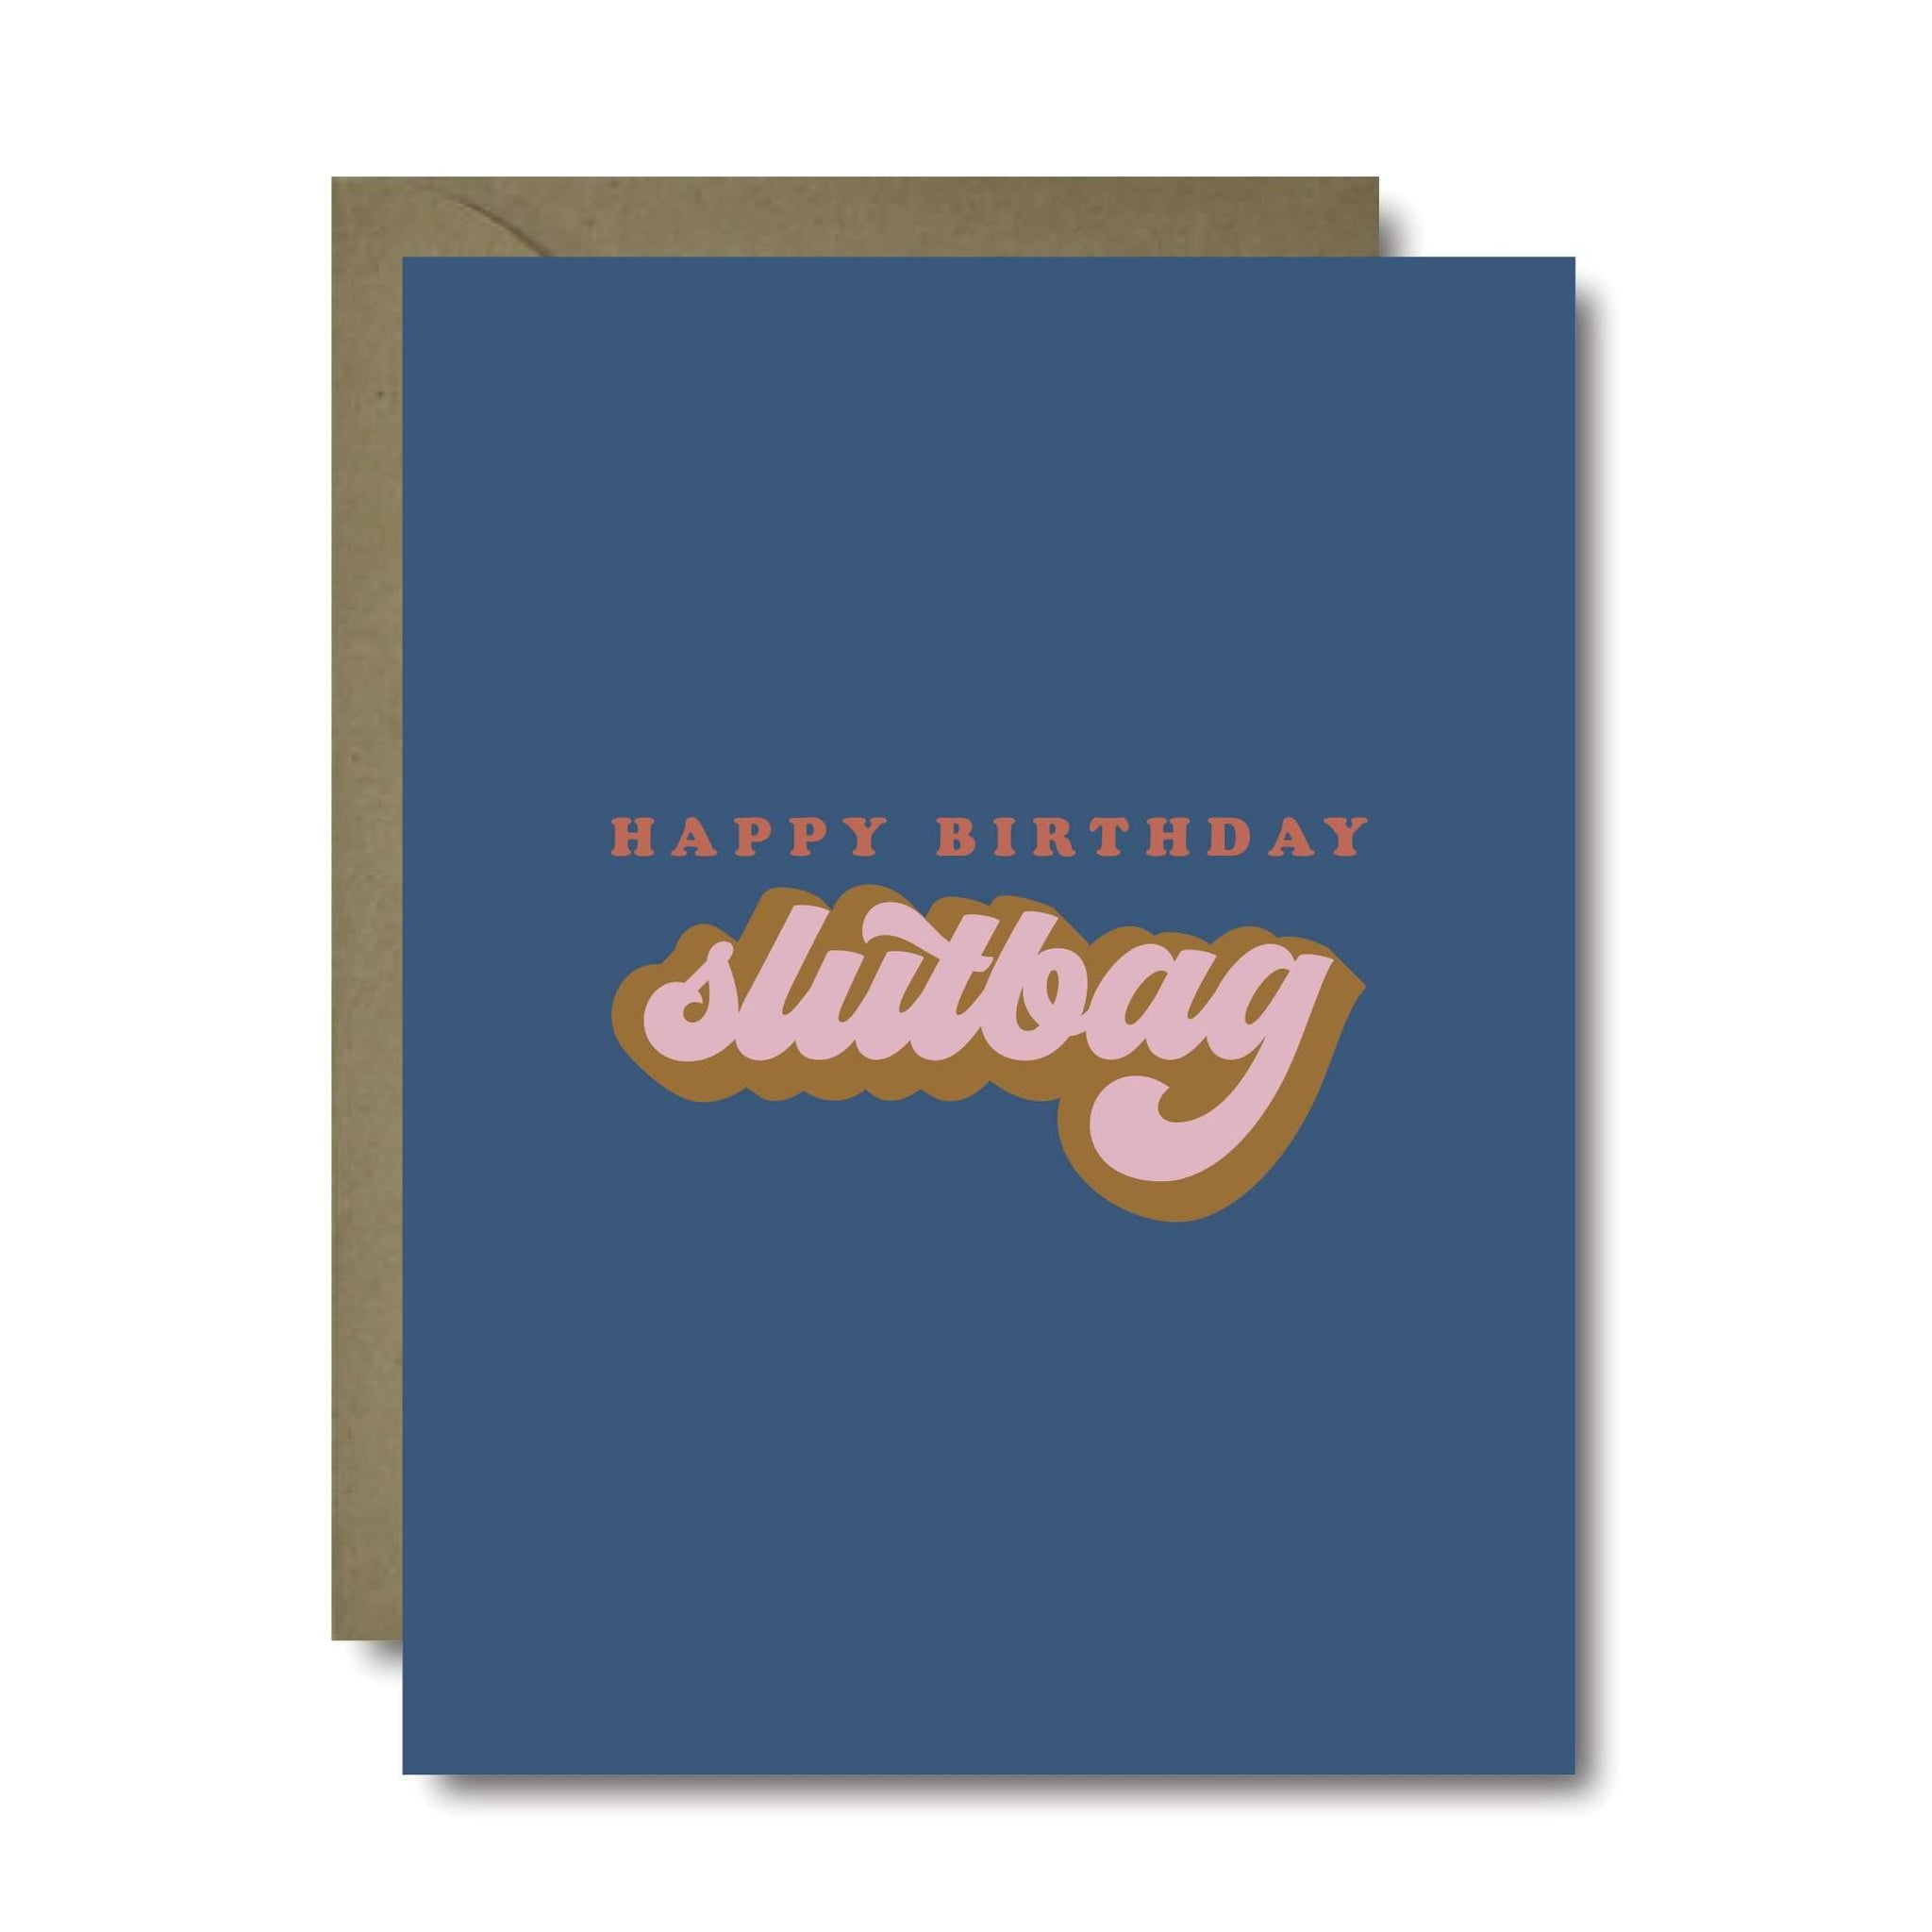 Slutbag Birthday Greeting Card | A2